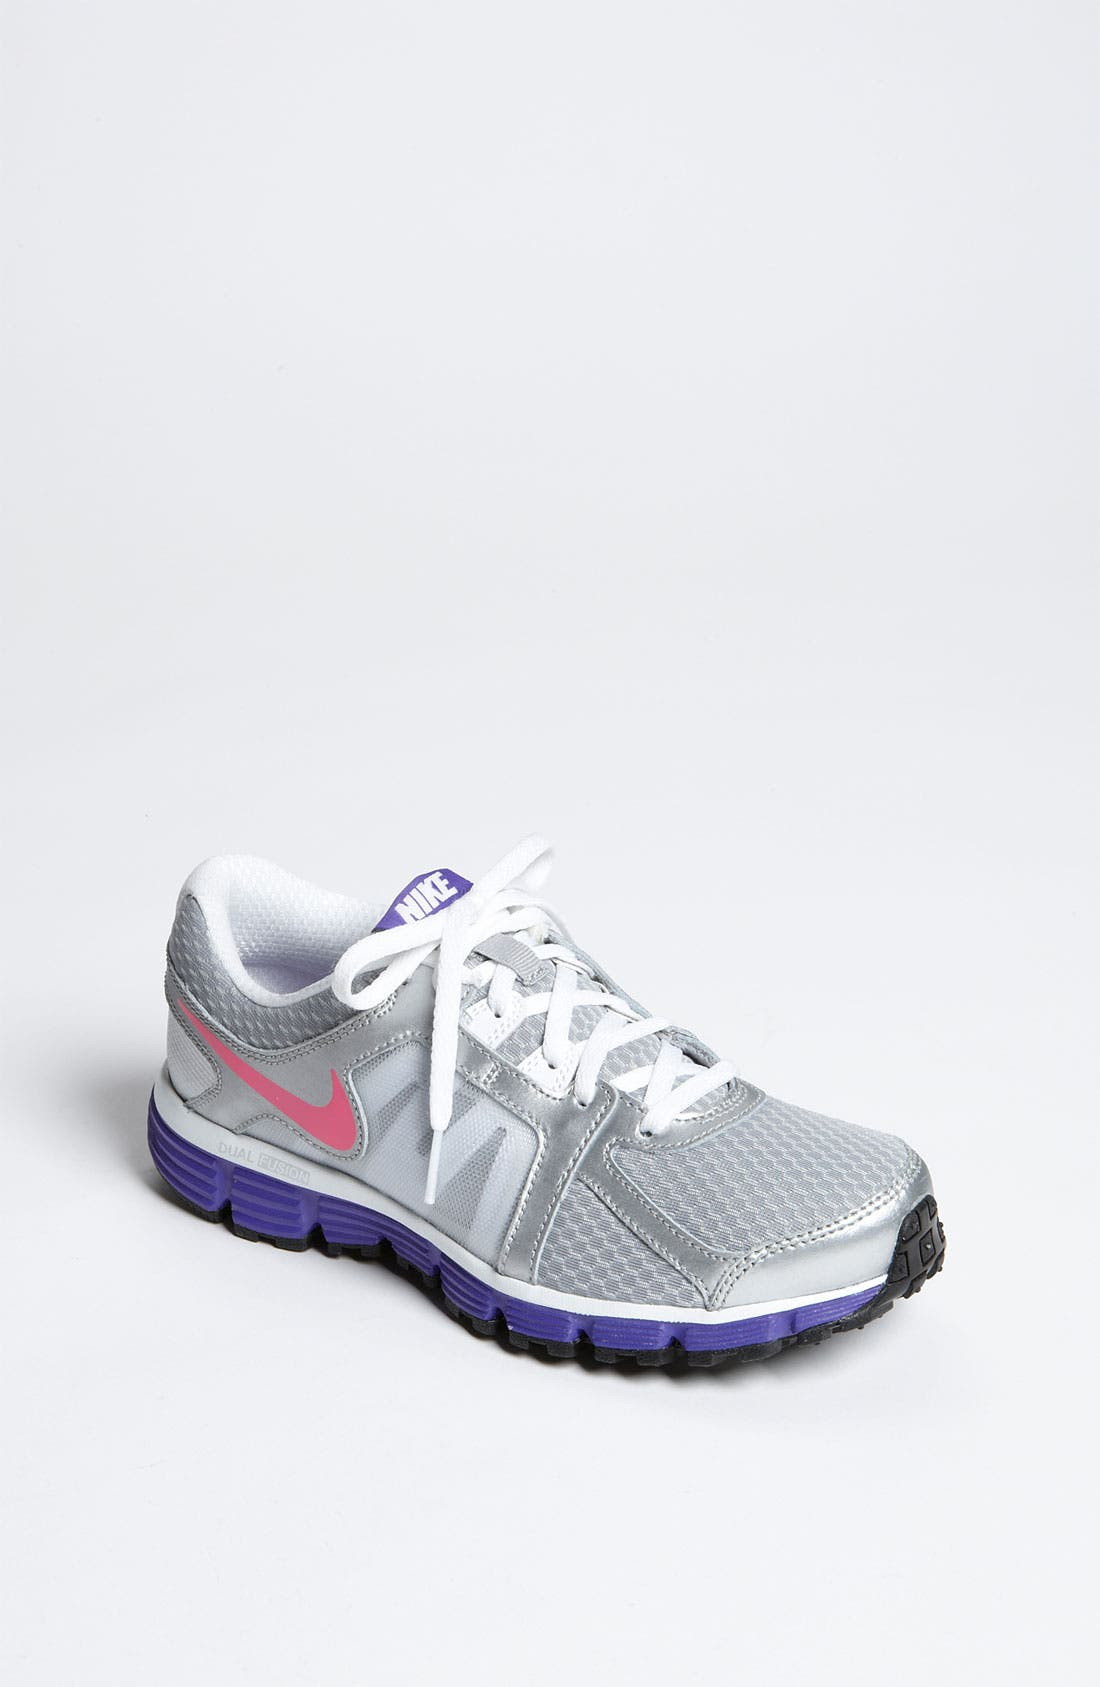 Alternate Image 1 Selected - Nike 'Dual Fusion ST 2' Running Shoe (Toddler, Little Kid & Big Kid)